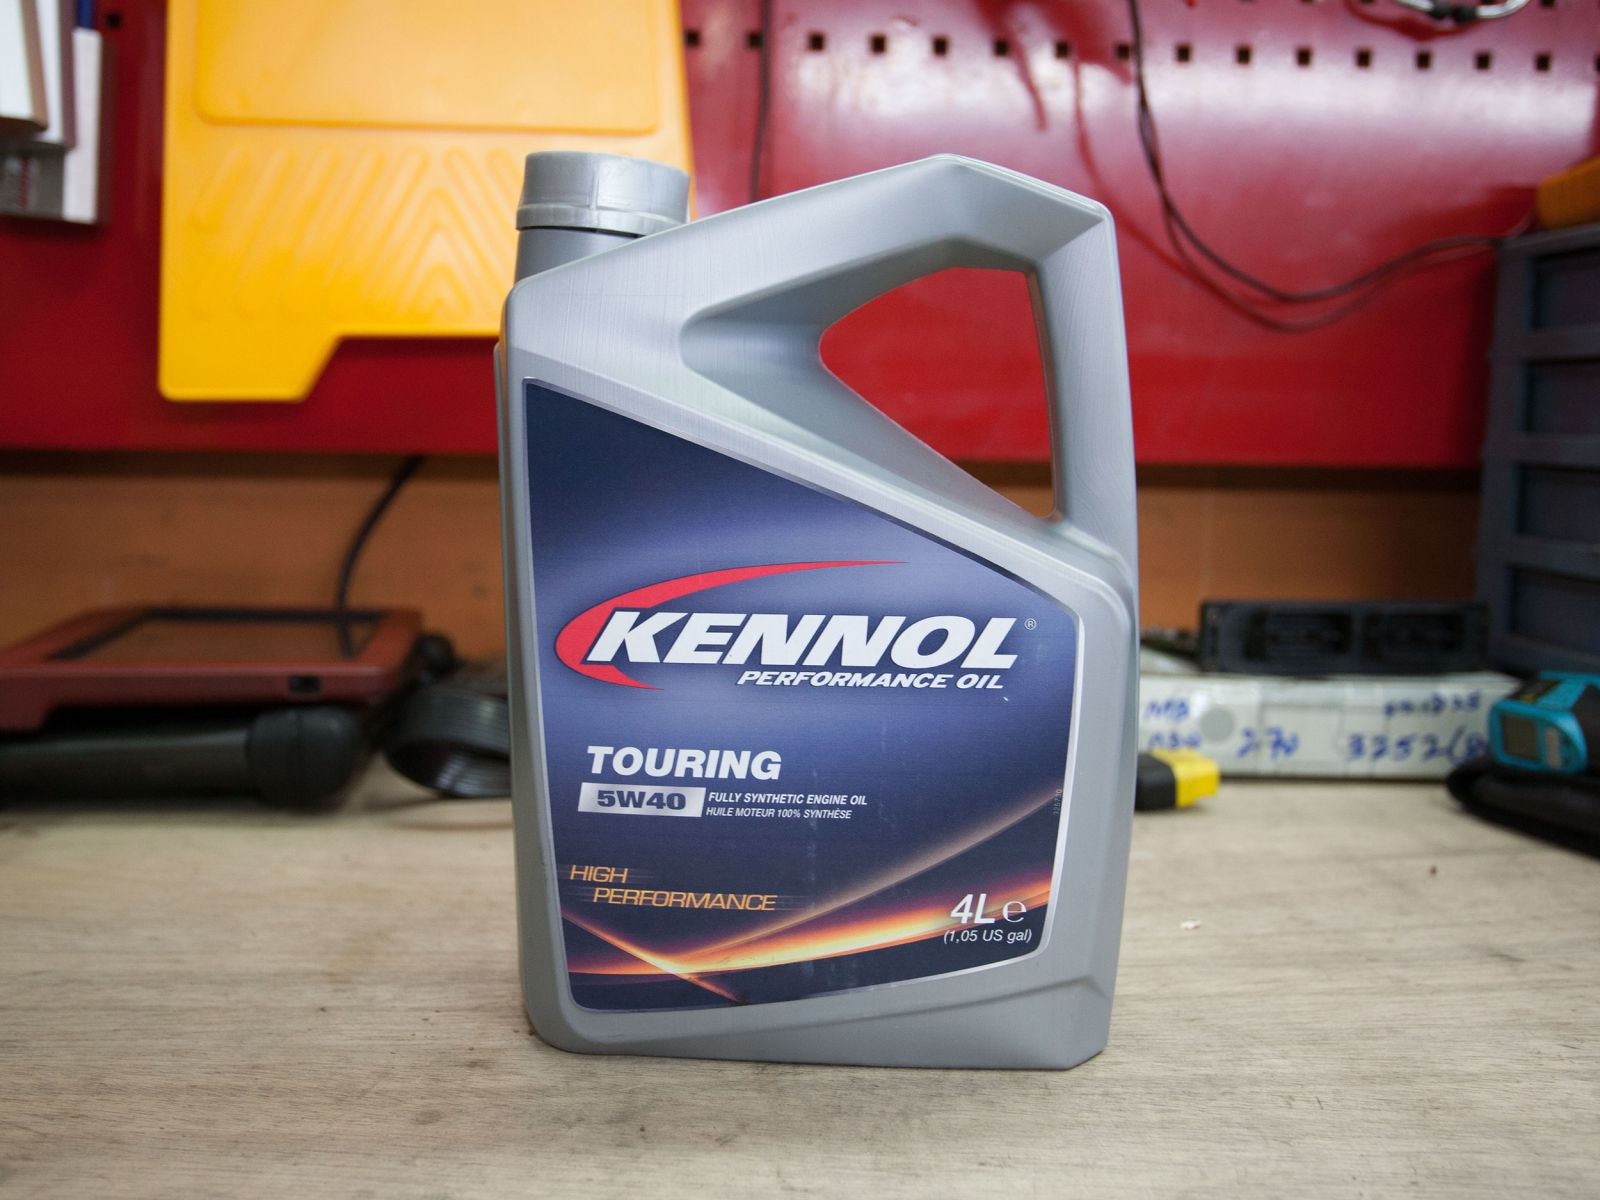 Kennol Touring 5W40 Full Synthetic Engine Oil Vehicle Servicing